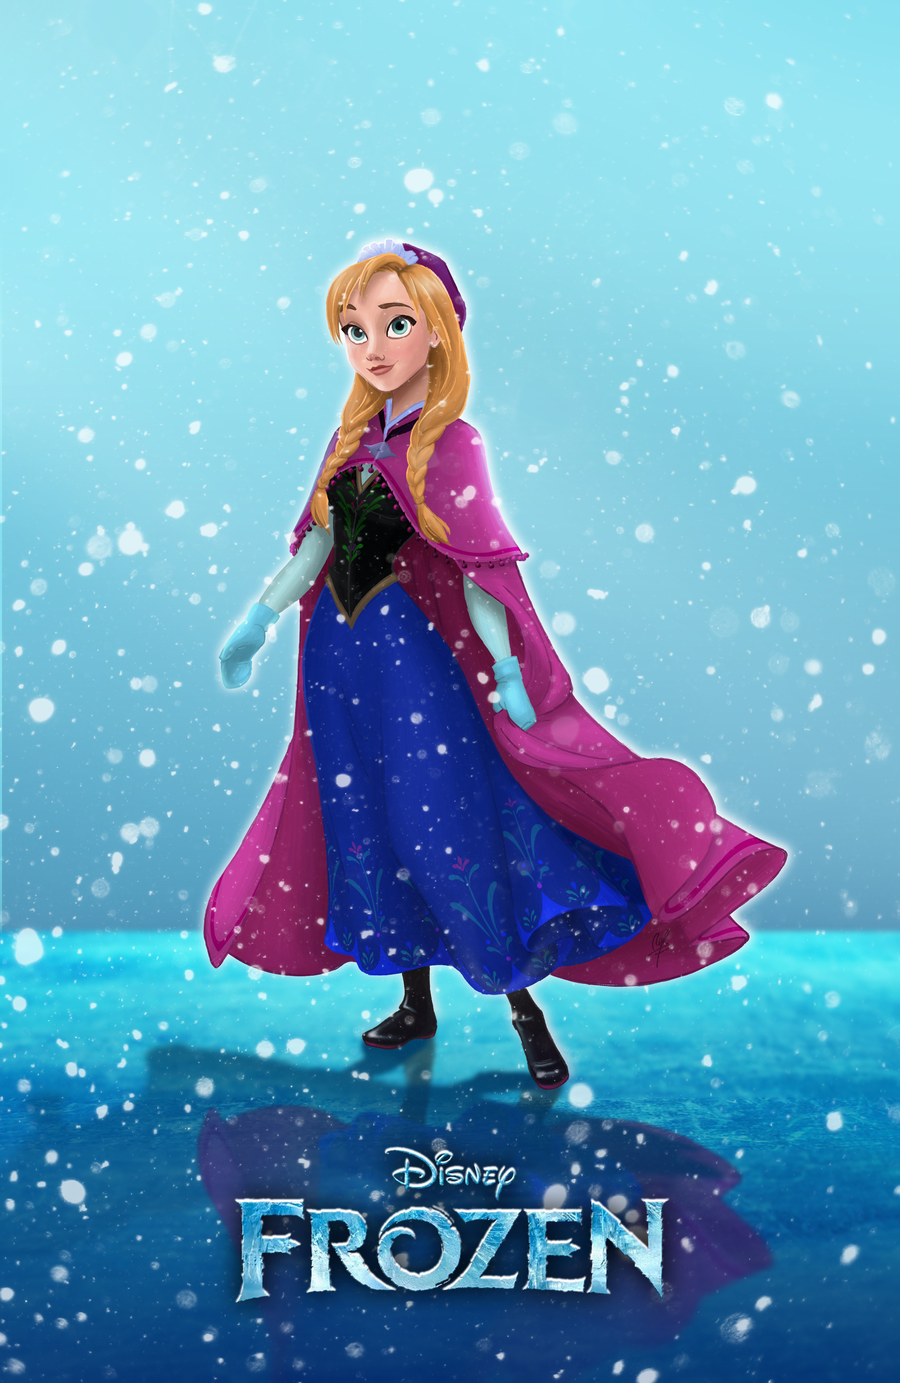 Princesses Anna (Frozen)